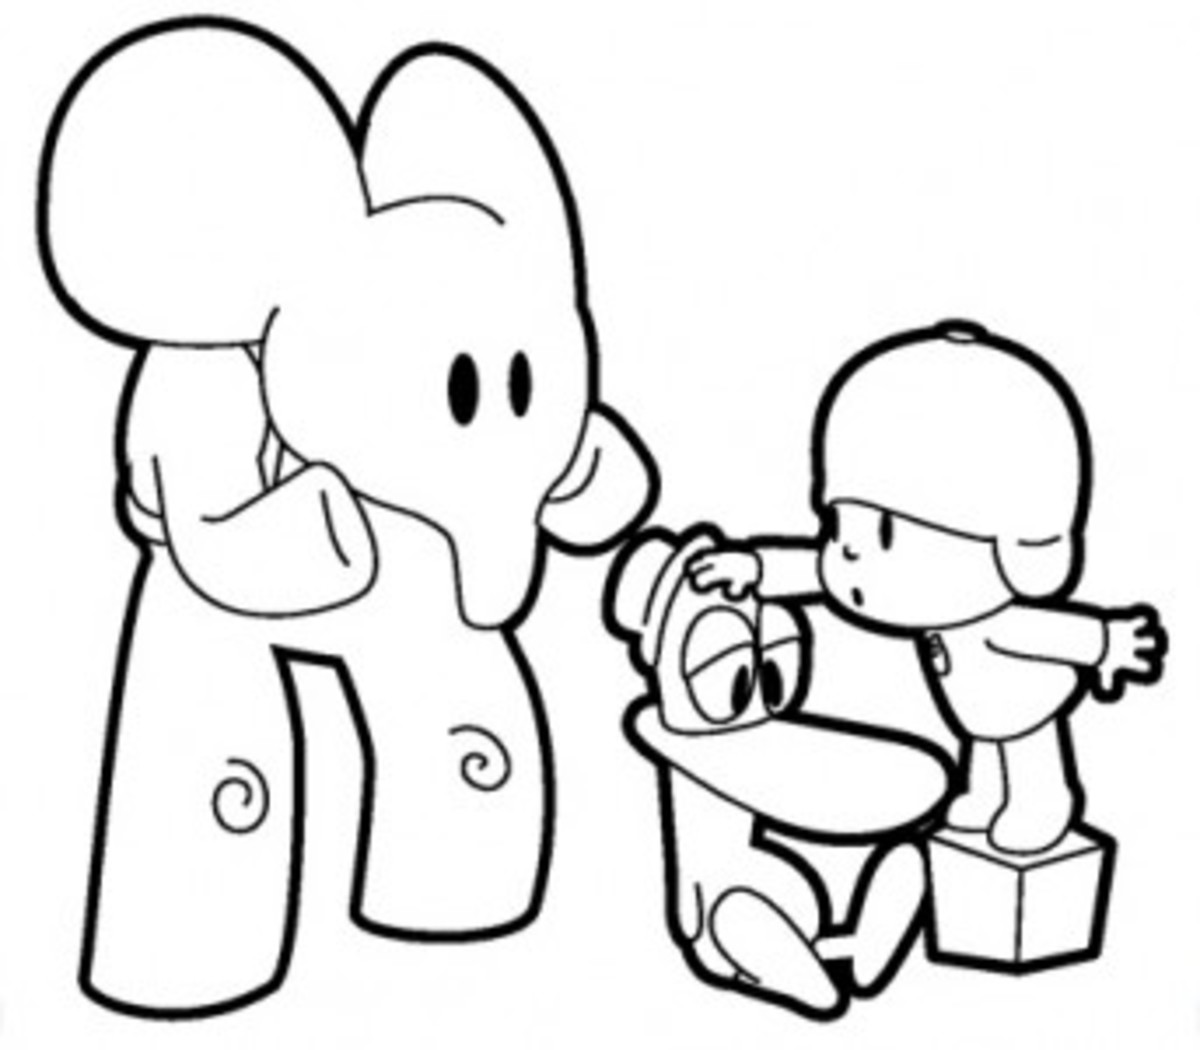 Having Fun with Free Pocoyo Coloring Pages | hubpages